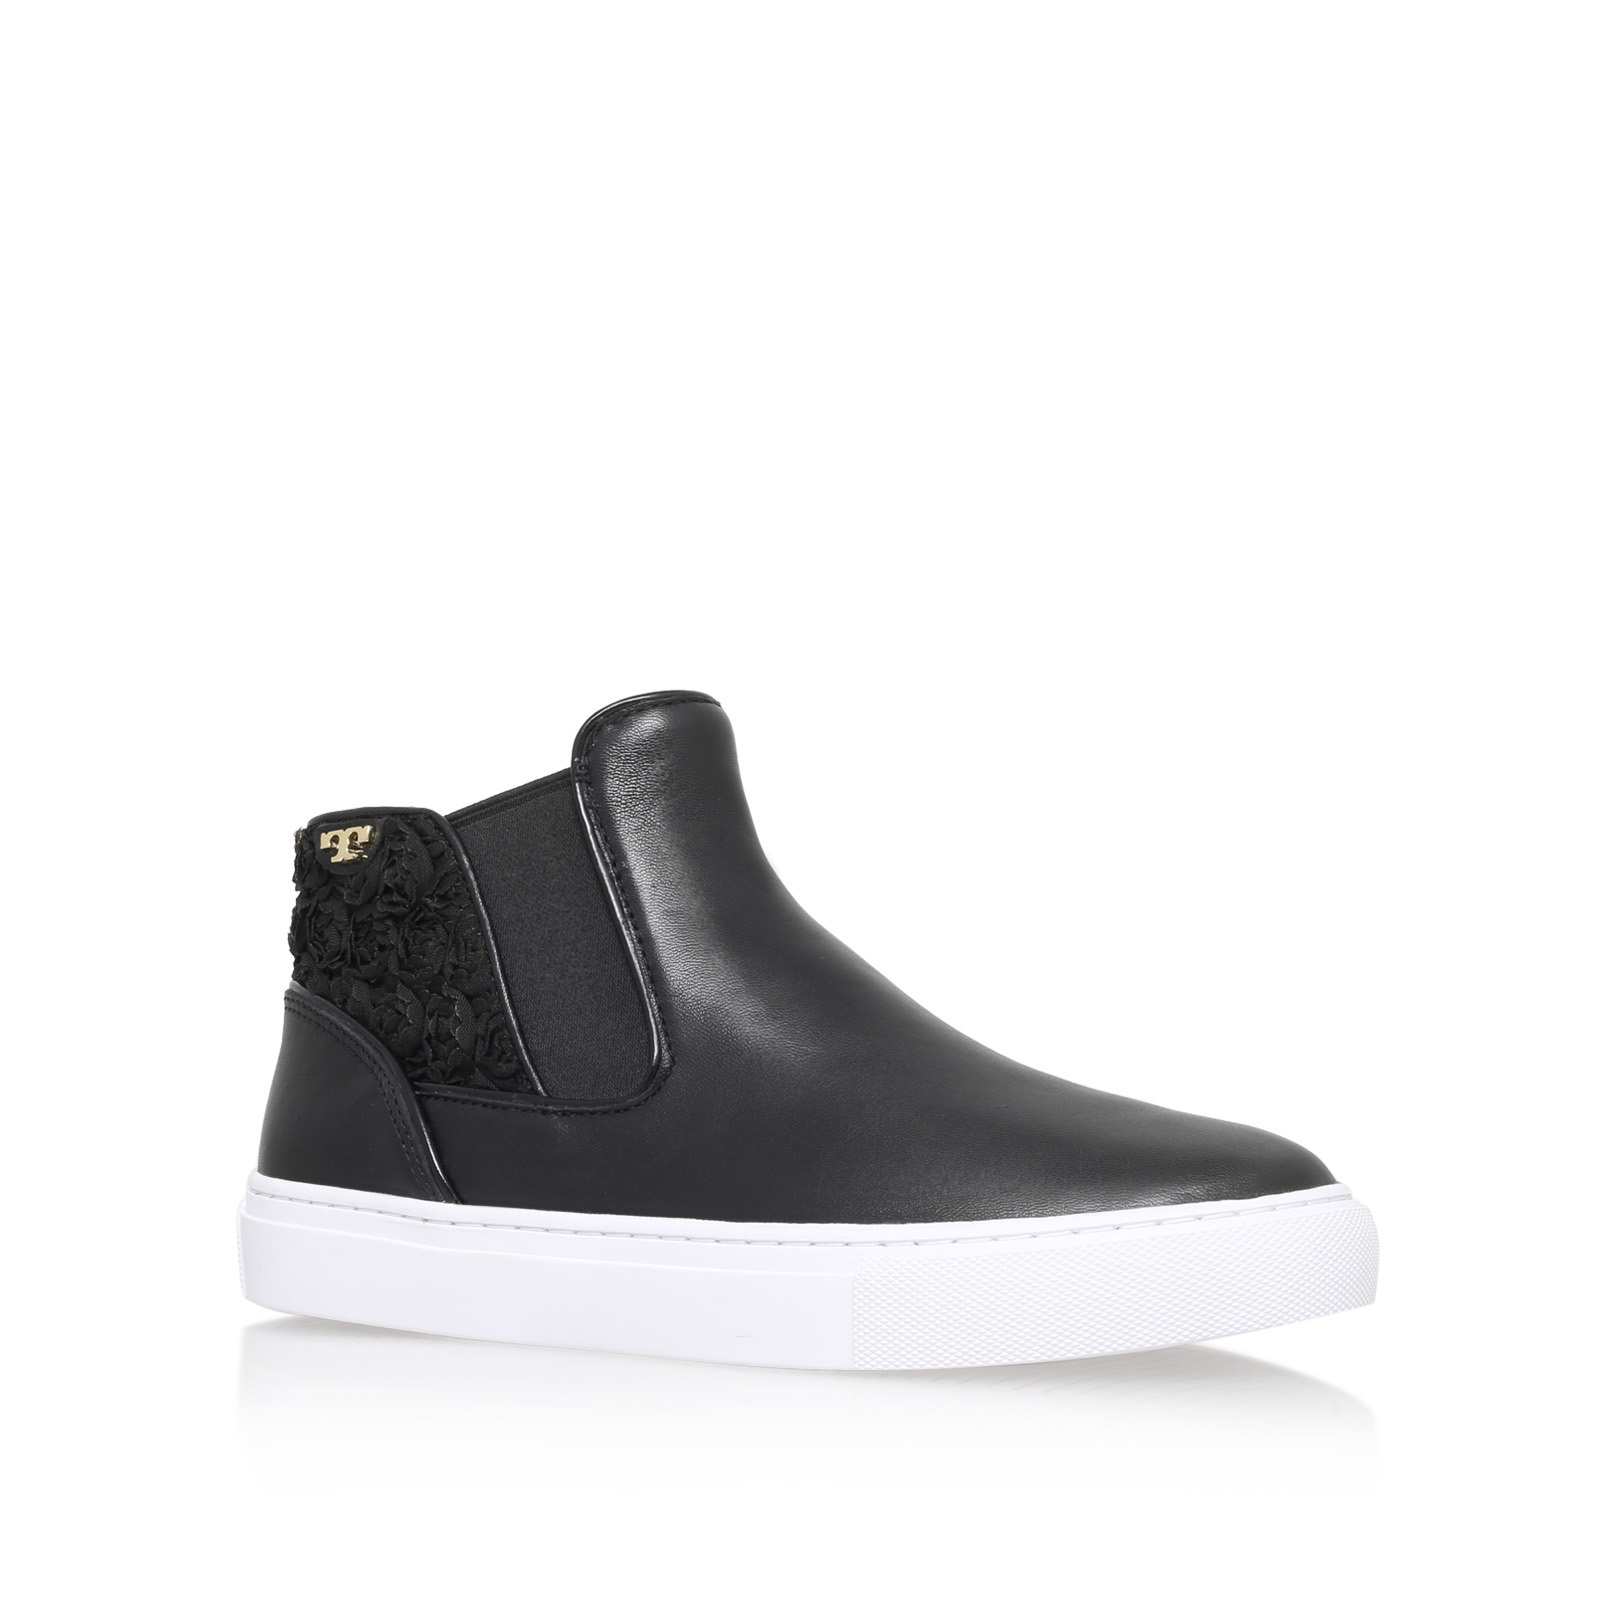 ROSETTE HIGH TOP SNEAKER